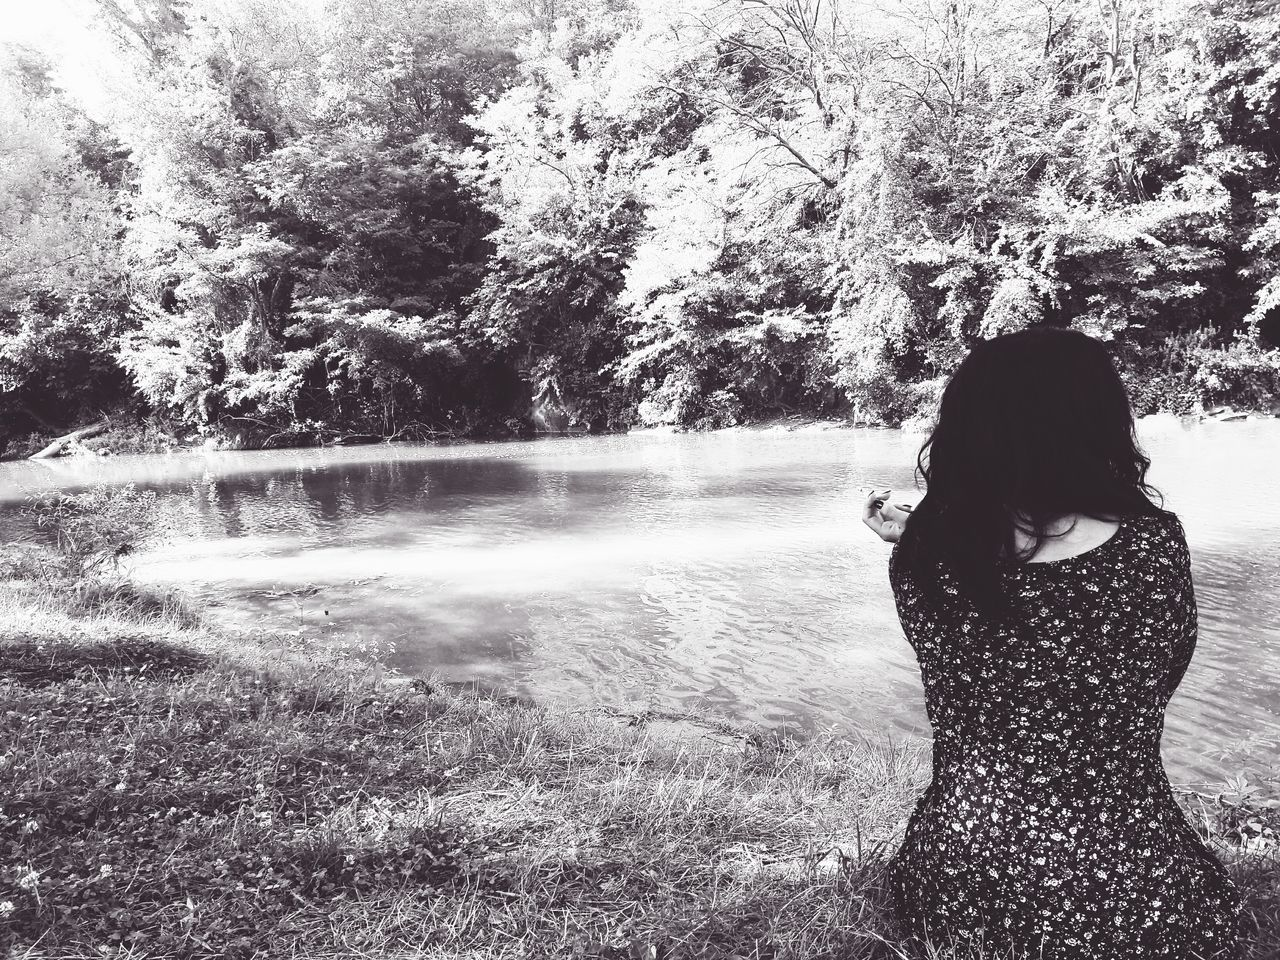 River Water Refreshment Nature Young Women Thinking About Life Woow EyeEm Best Edits Eyeemphotography Creative Photography EyeEmBestPics Eyem Best Shots Human Body Part Beautiful People People